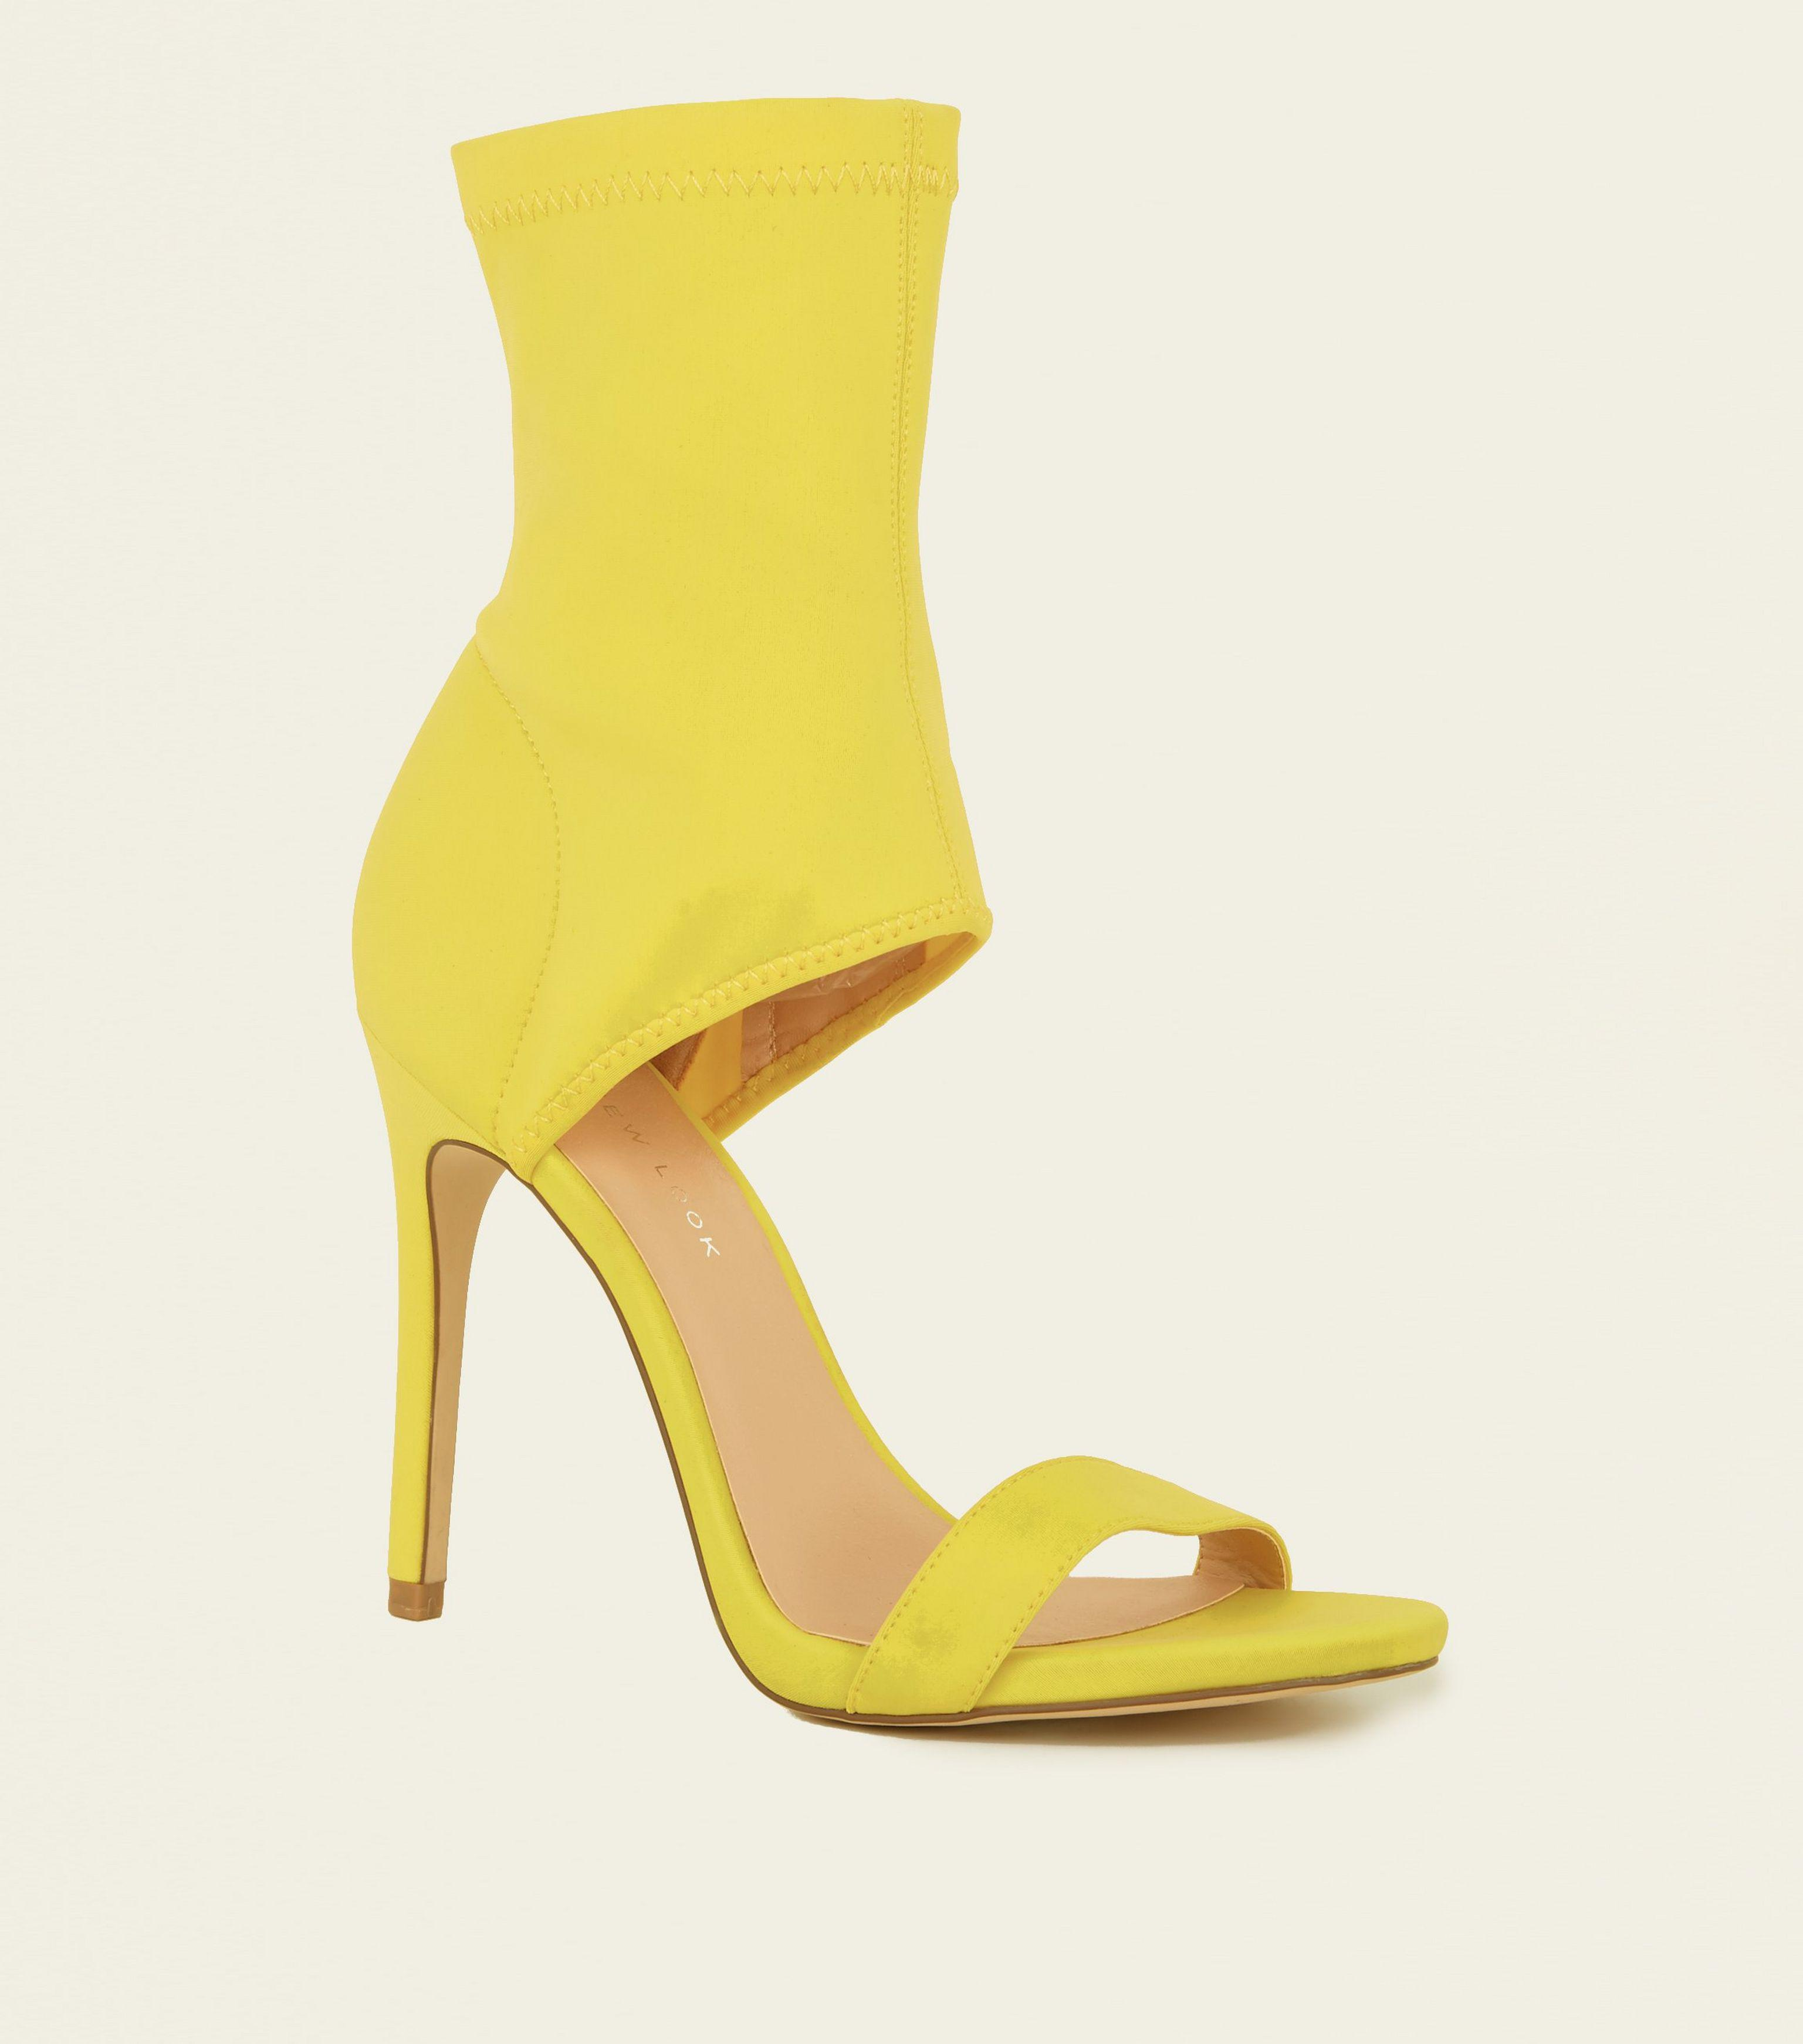 0a837011b04b New Look Yellow Scuba Ankle Strap Two Part Stiletto Sandals in ...